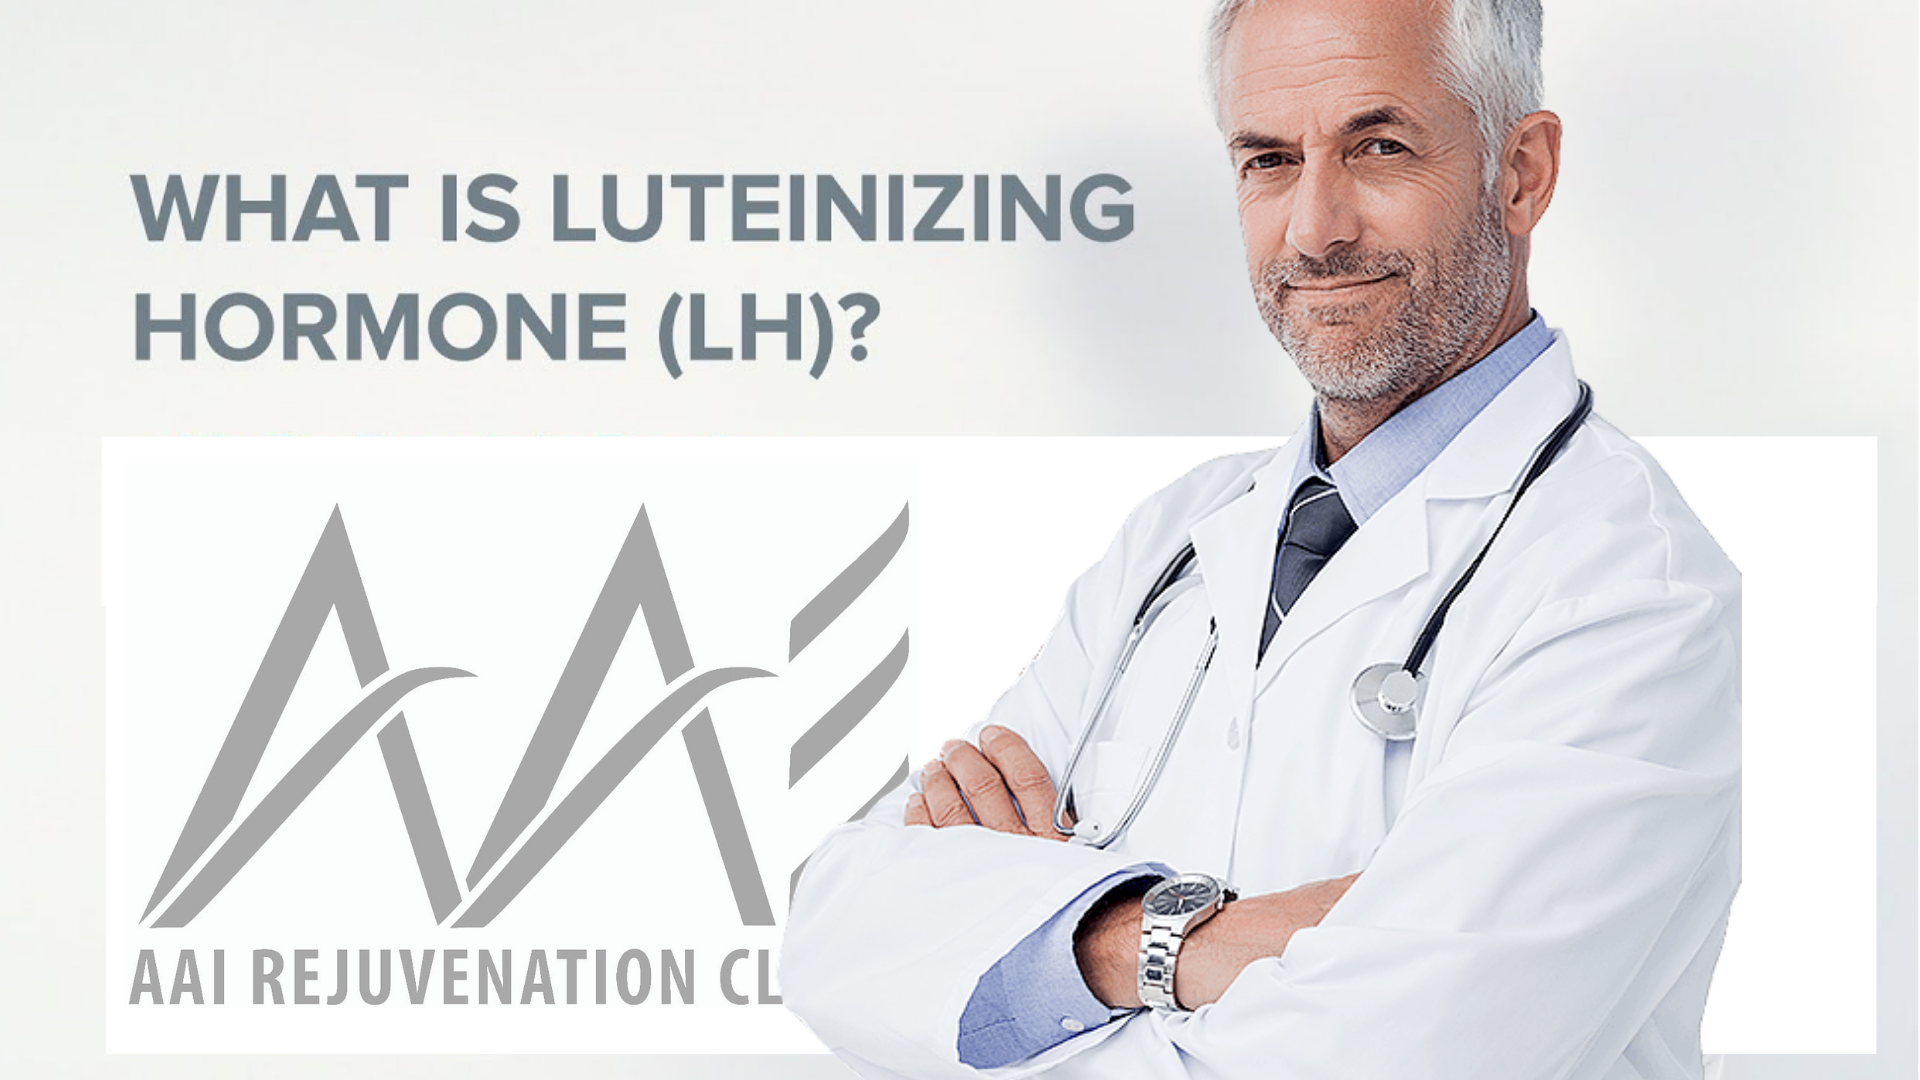 What is Luteinizing Hormone (LH) and Testosterone